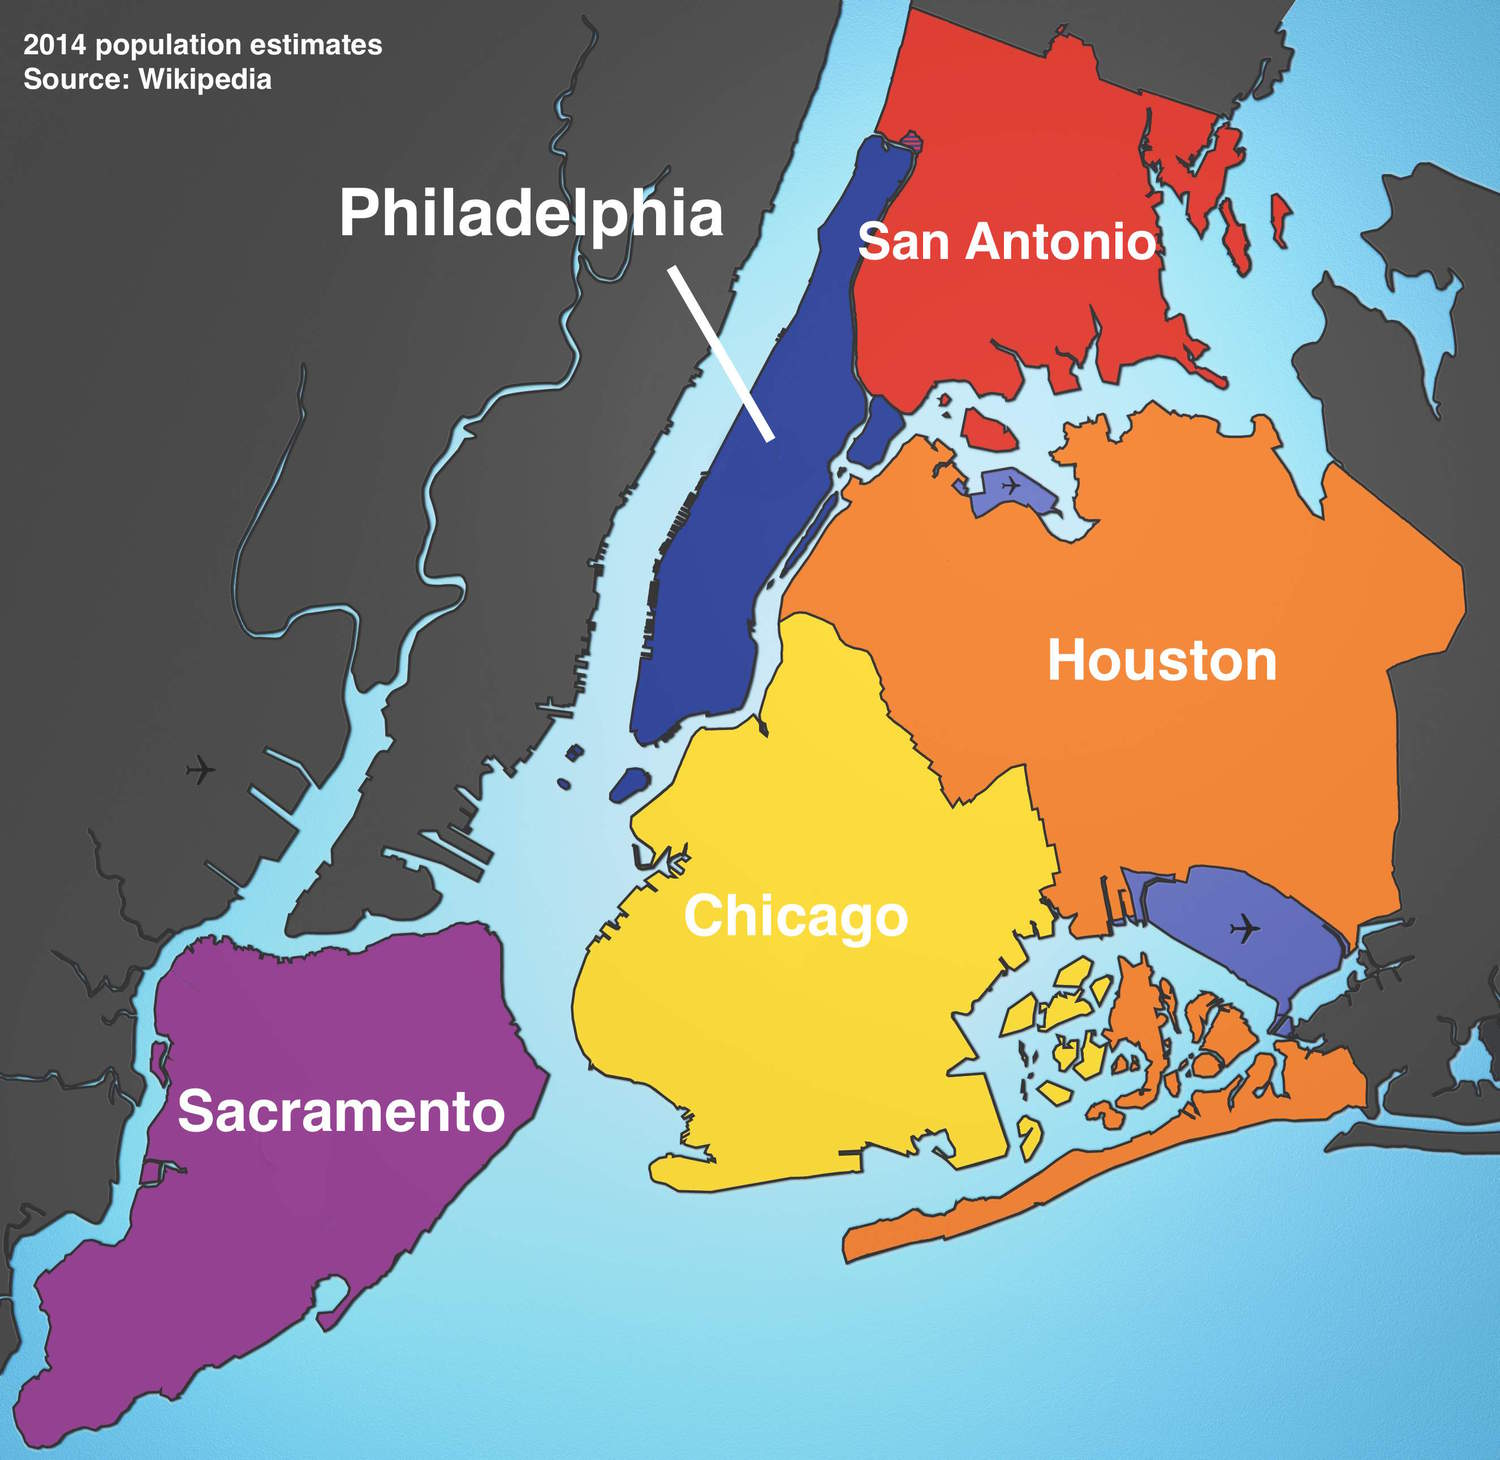 Maps Show What Major US Cities Can Fit Inside NYC Boroughs